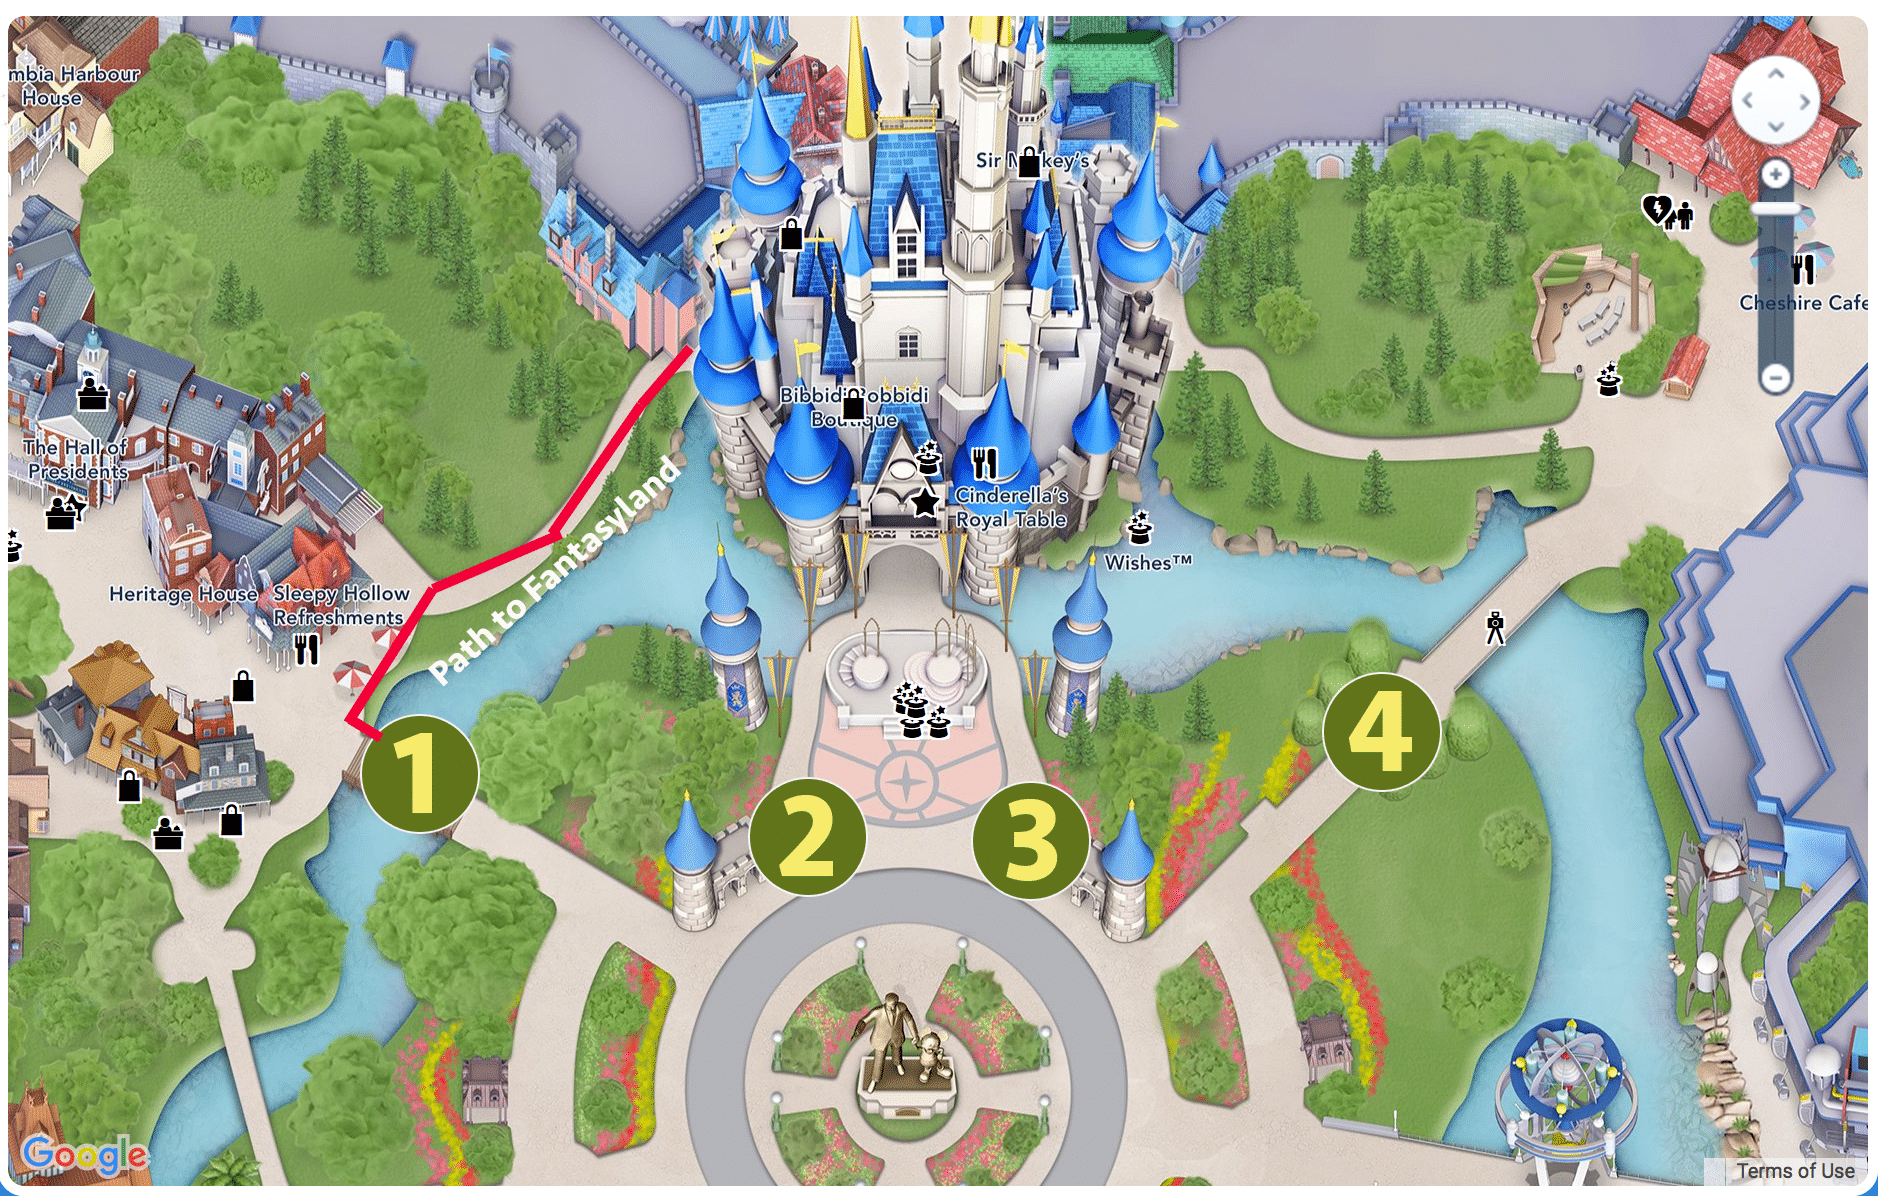 travel map where i ve been with About The New Magic Kingdom Opening Procedure on 4756881399 also 5d123d3ec6a6eb0ad7b361d22e68f49d likewise Jeju Island With Kids furthermore Things To Do On Transit Amsterdam Airport Schiphol furthermore Must Do Things Ljubljana.